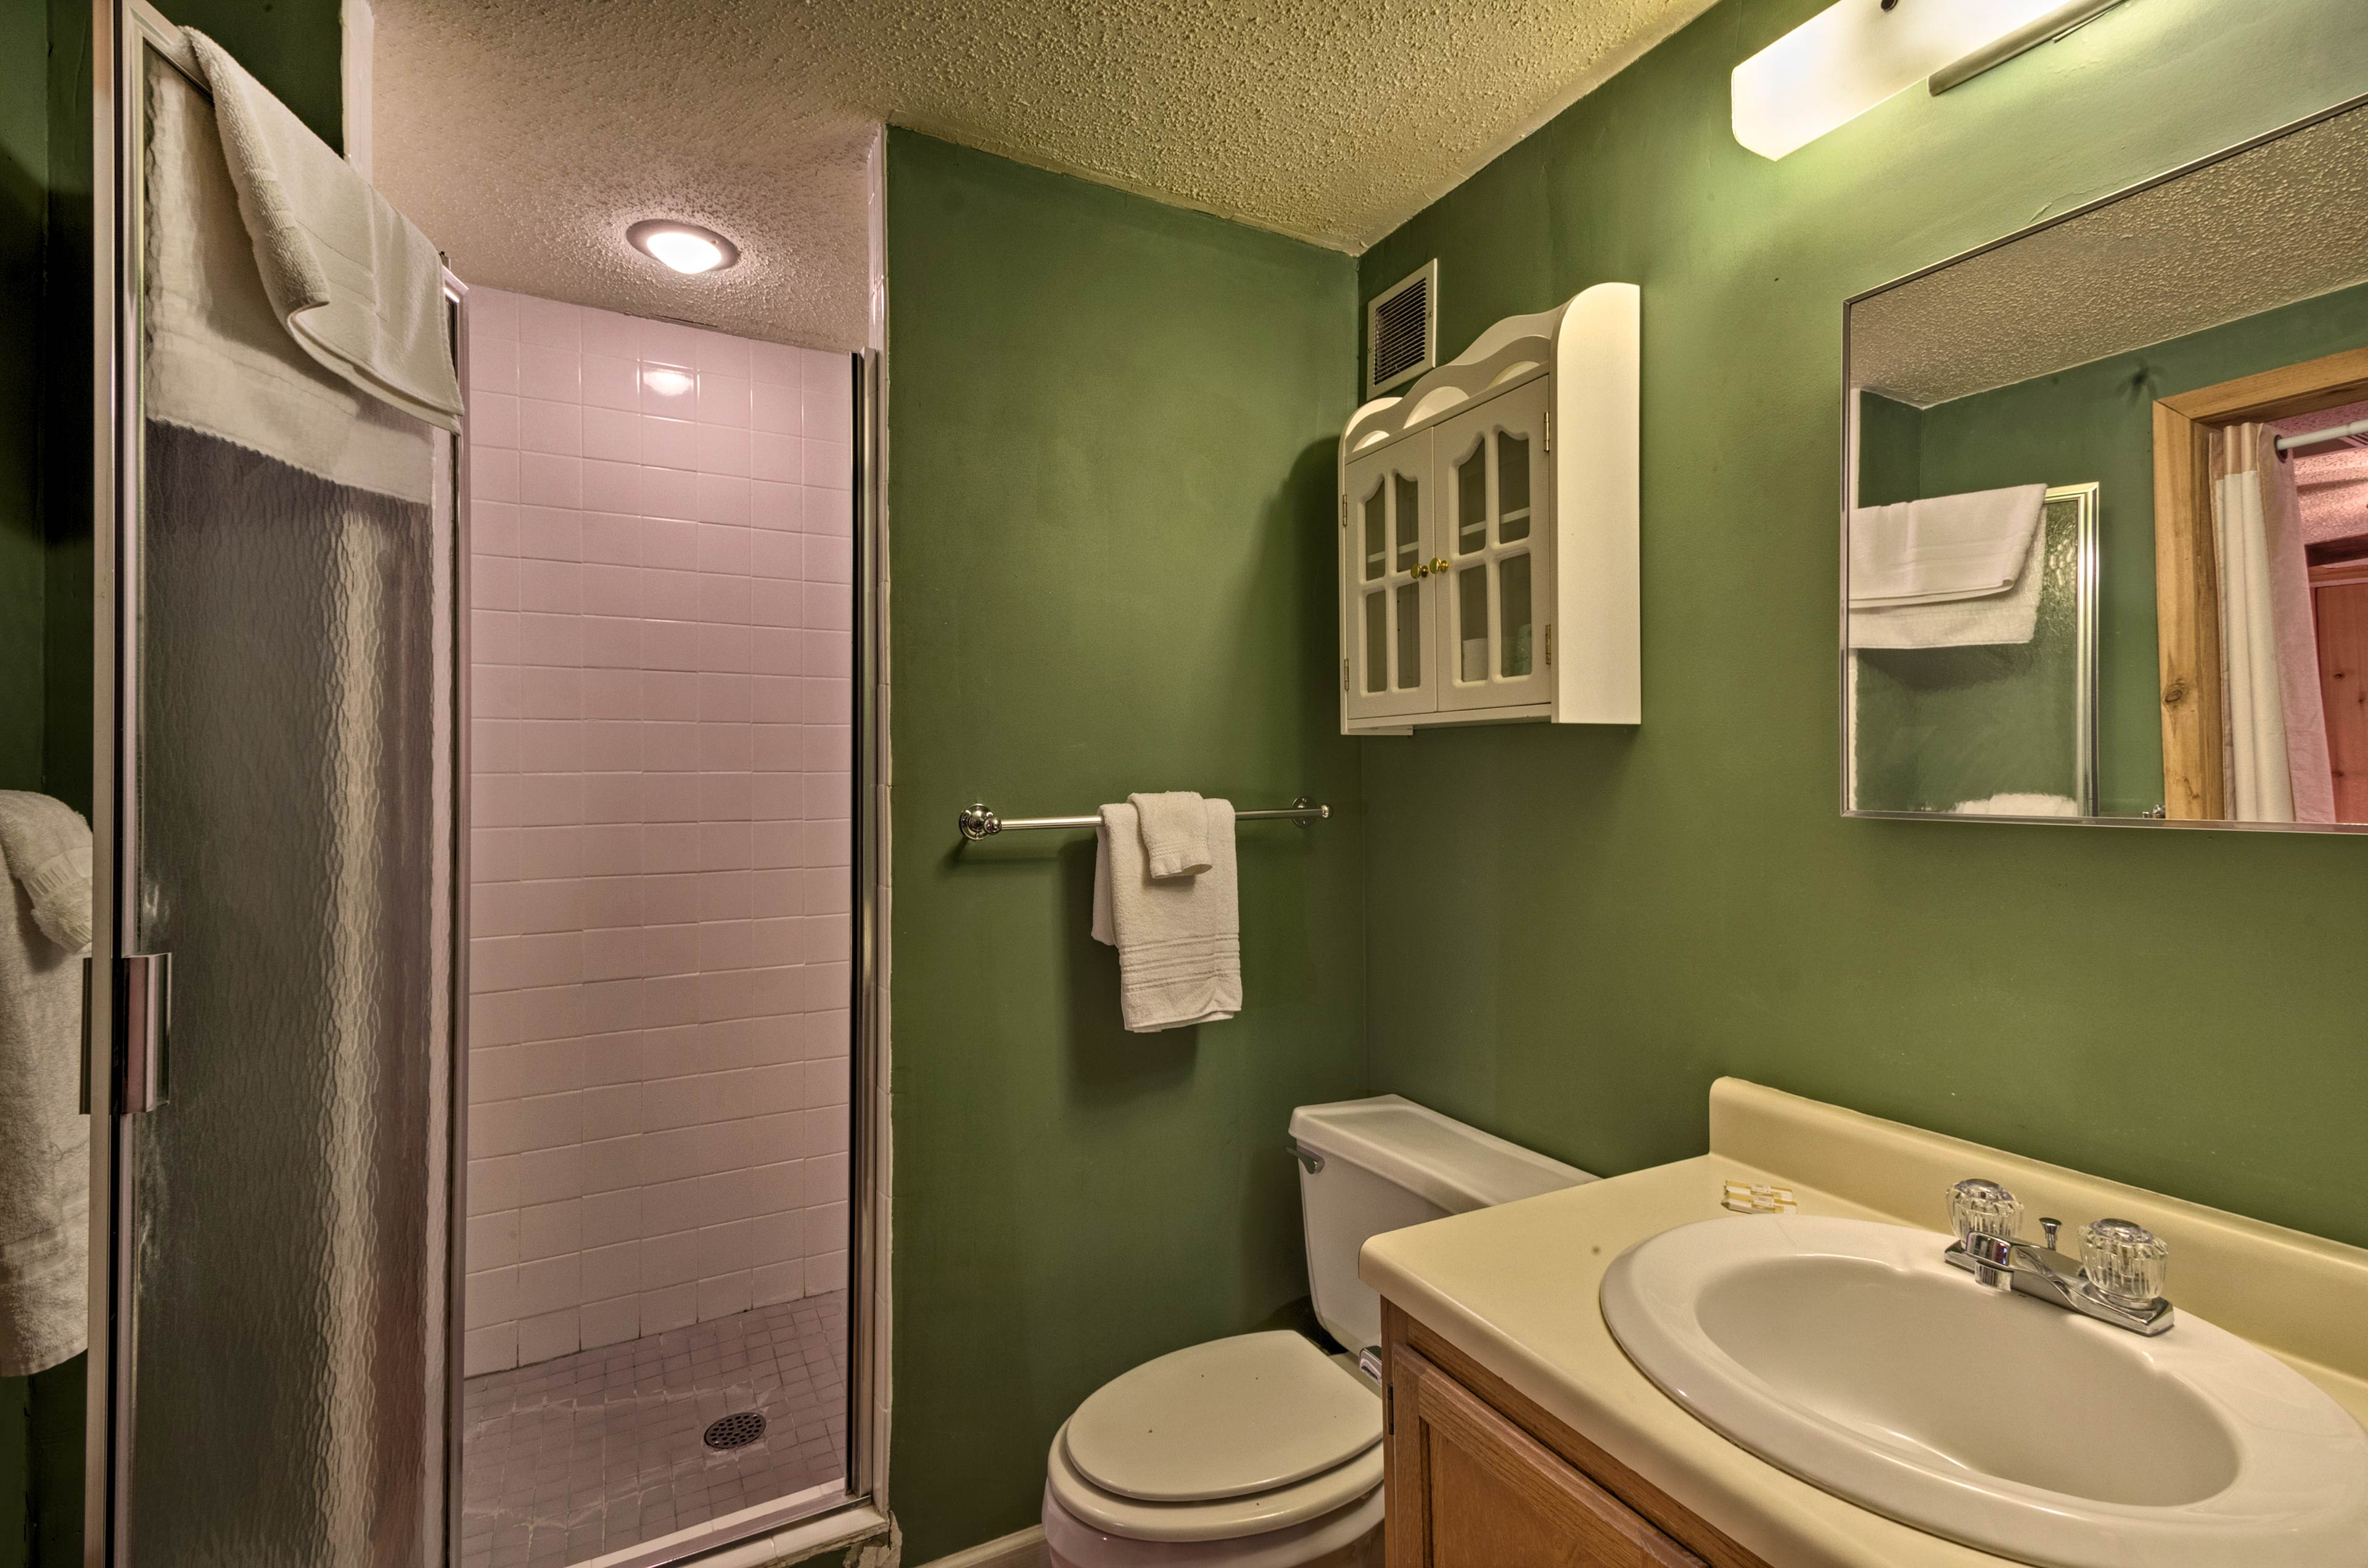 Both bathrooms come stocked with fresh towels.